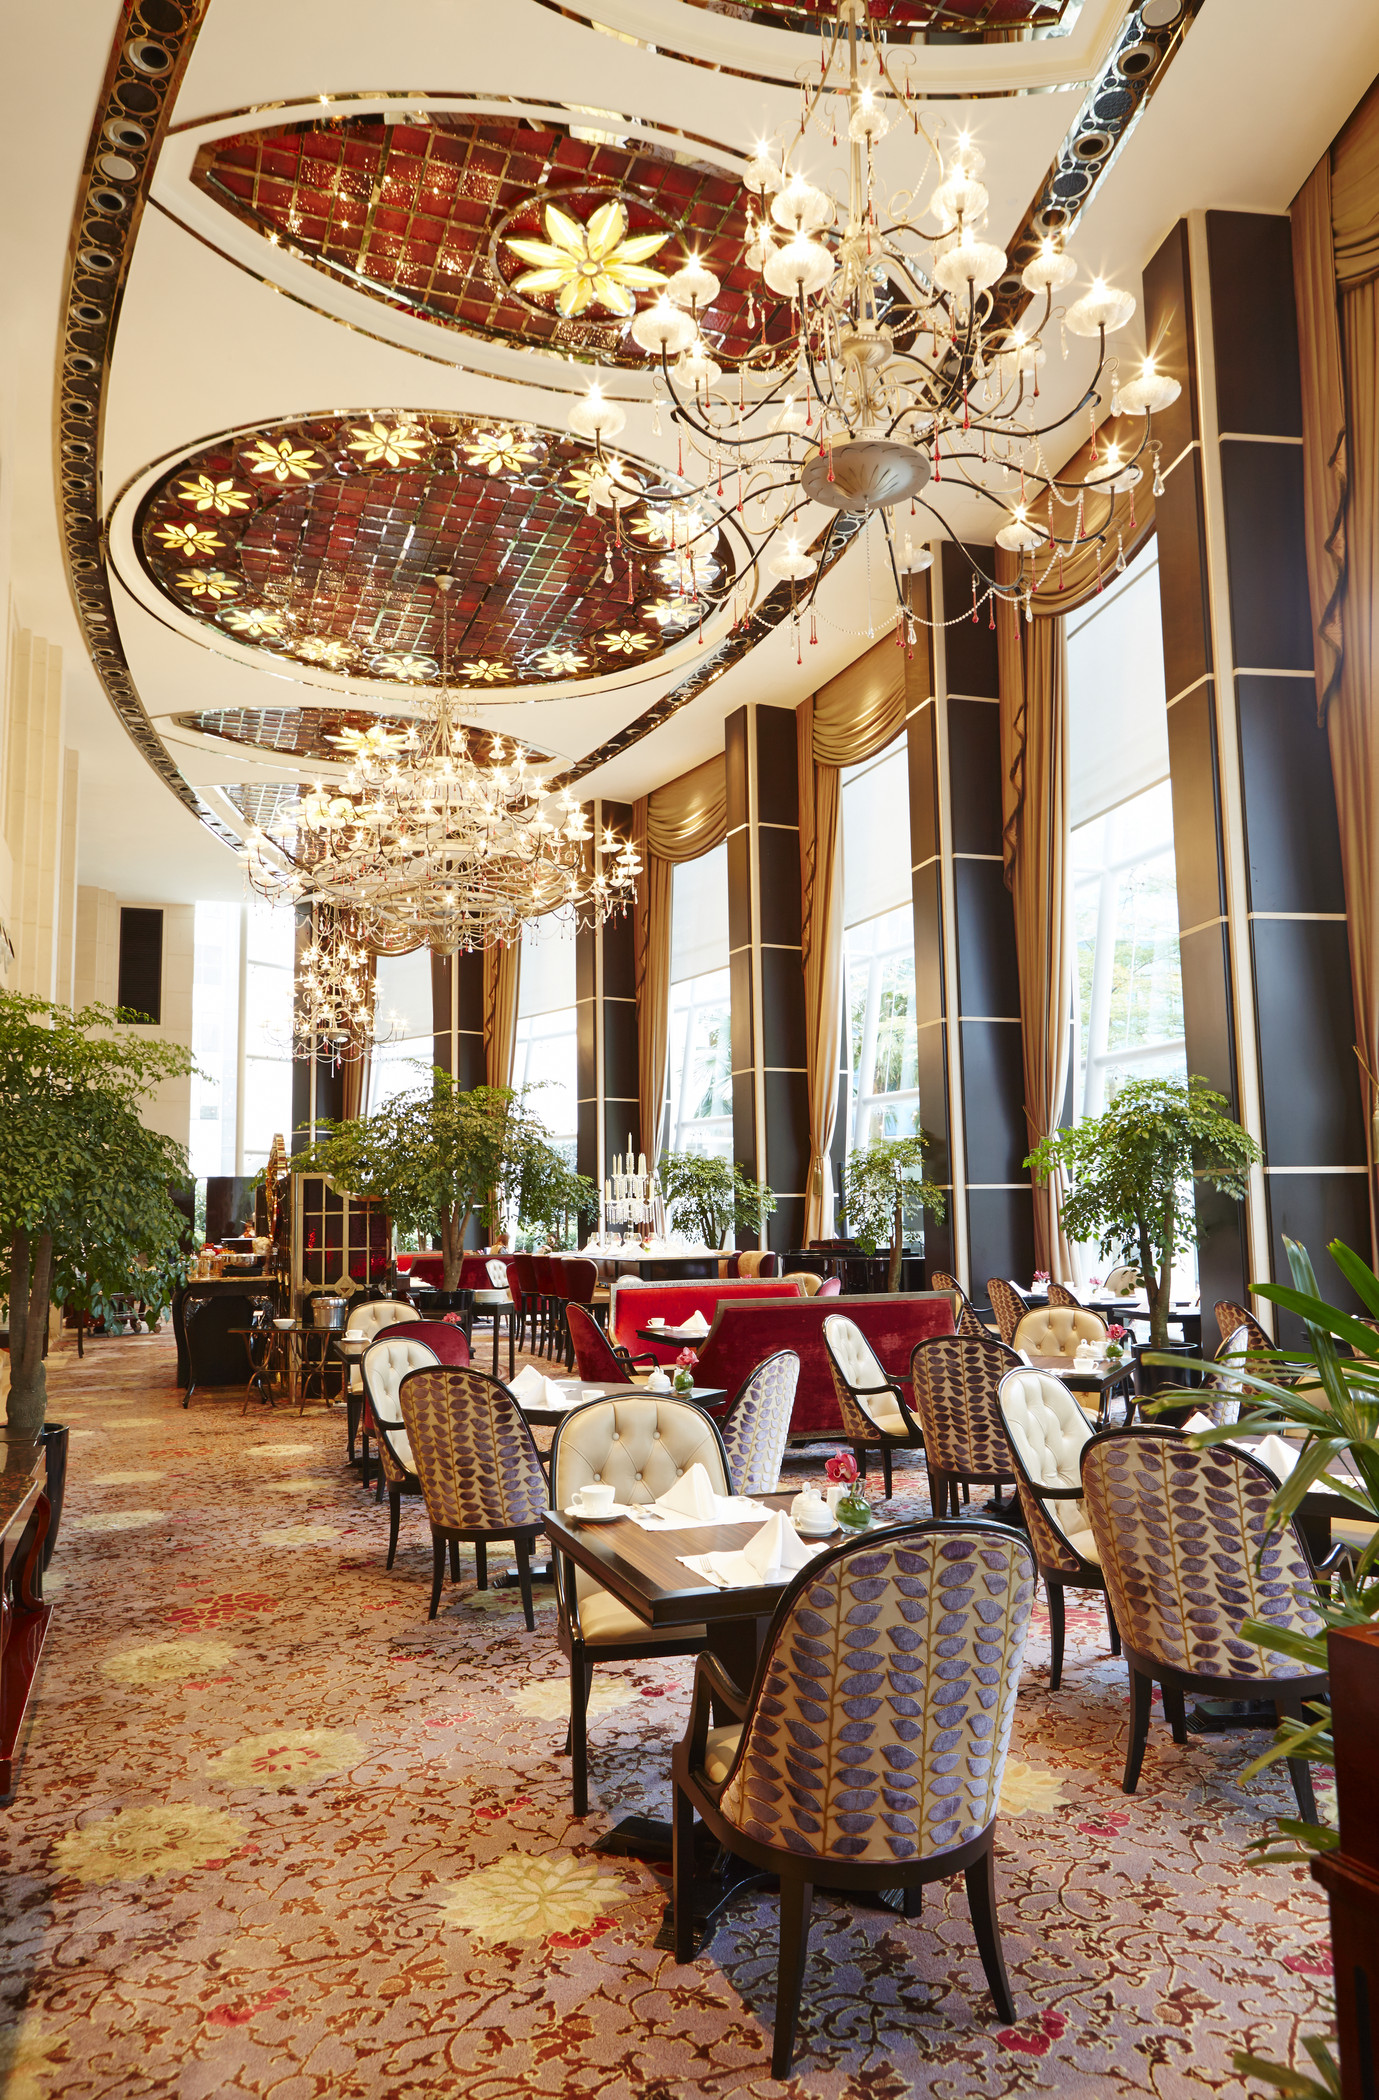 Brasserie Les Saveurs | Photo Credit: The St. Regis Singapore